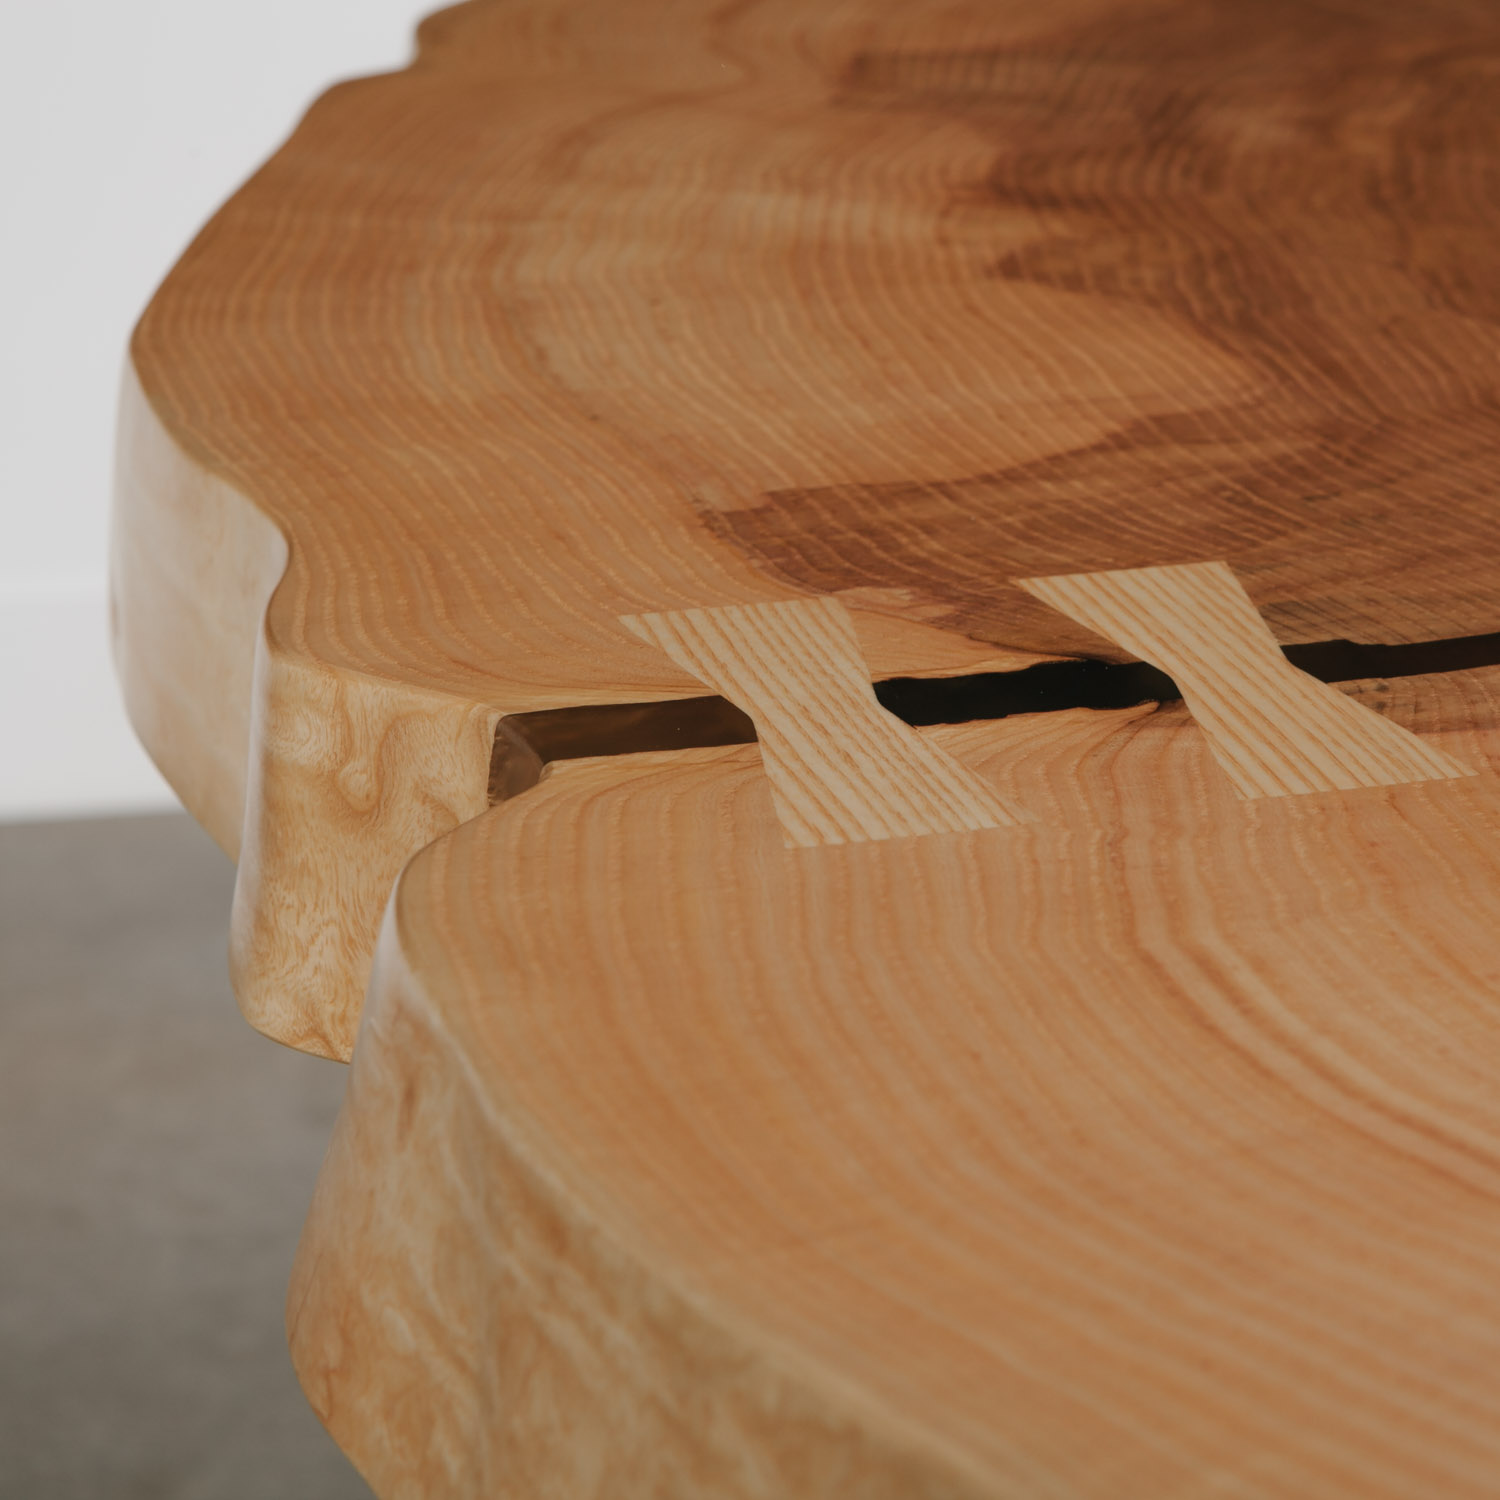 Round live edge dovetail joint